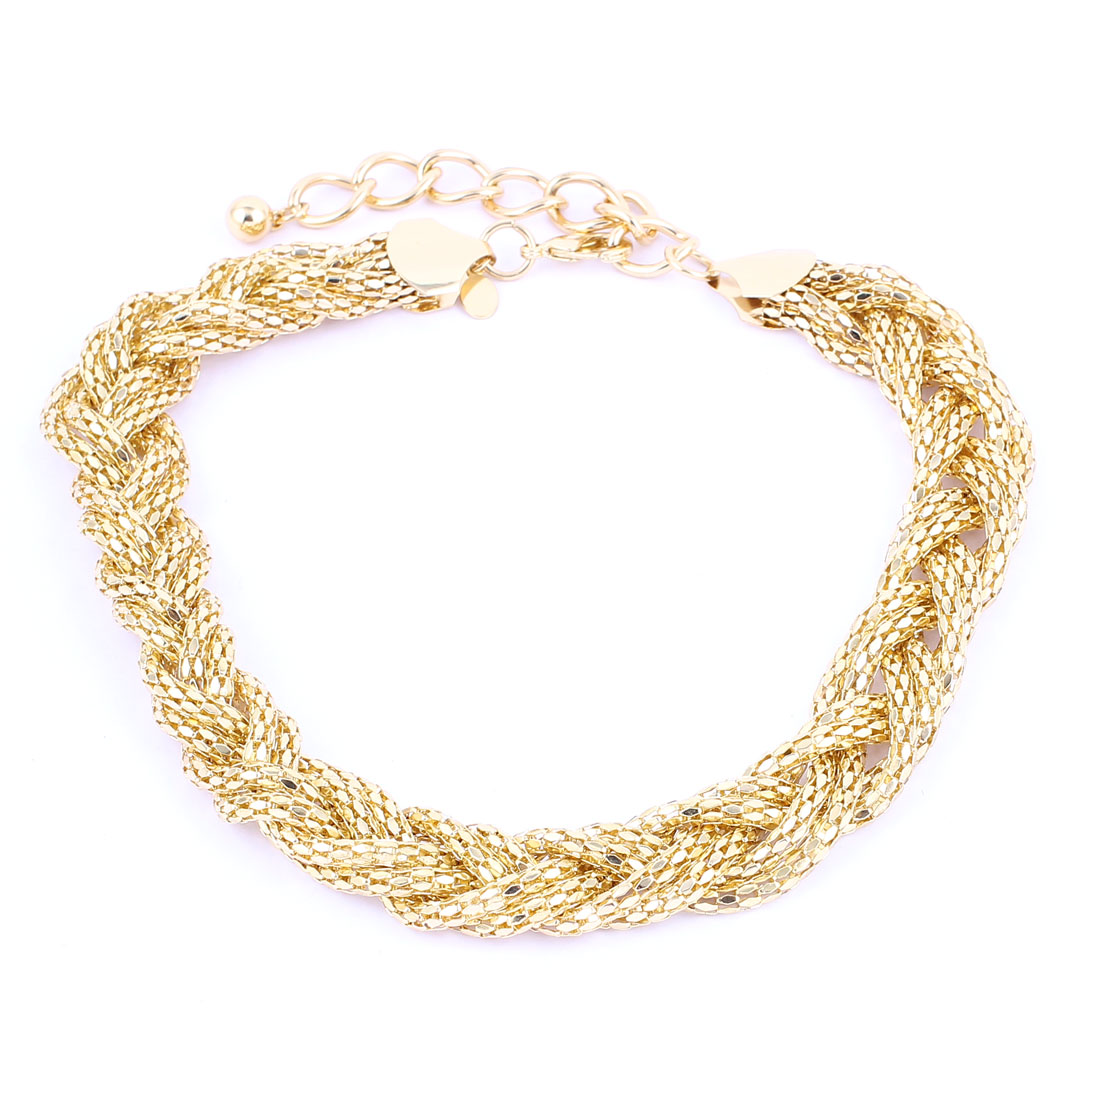 Gold Tone Metal Thick Braids Design Lobster Buckle Strip Link Chain Necklace Neckwear Collar for Ladies Women